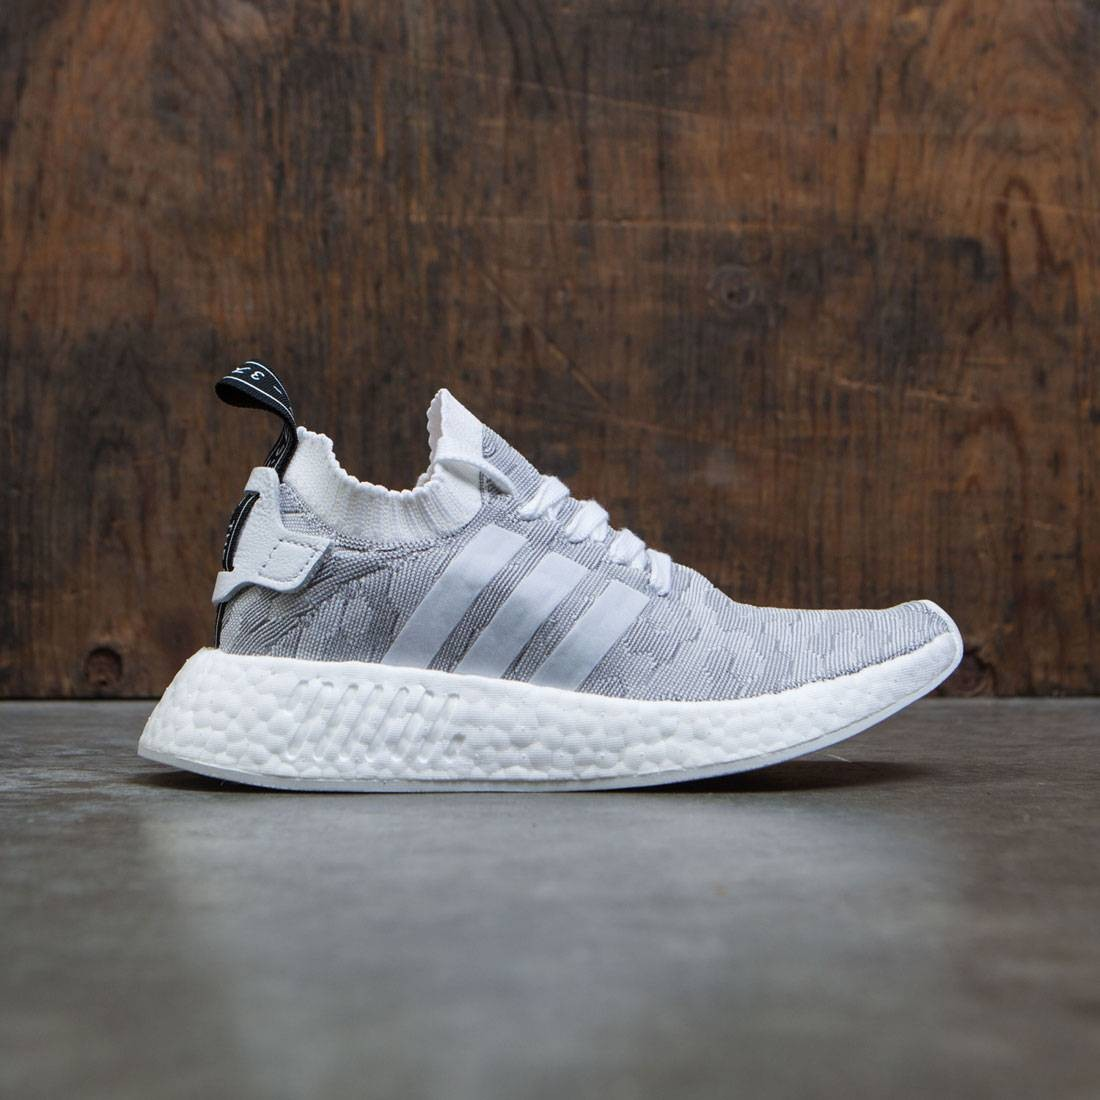 new product f94d9 65edf Adidas Women NMD R2 Primeknit W (white / footwear white / core black)